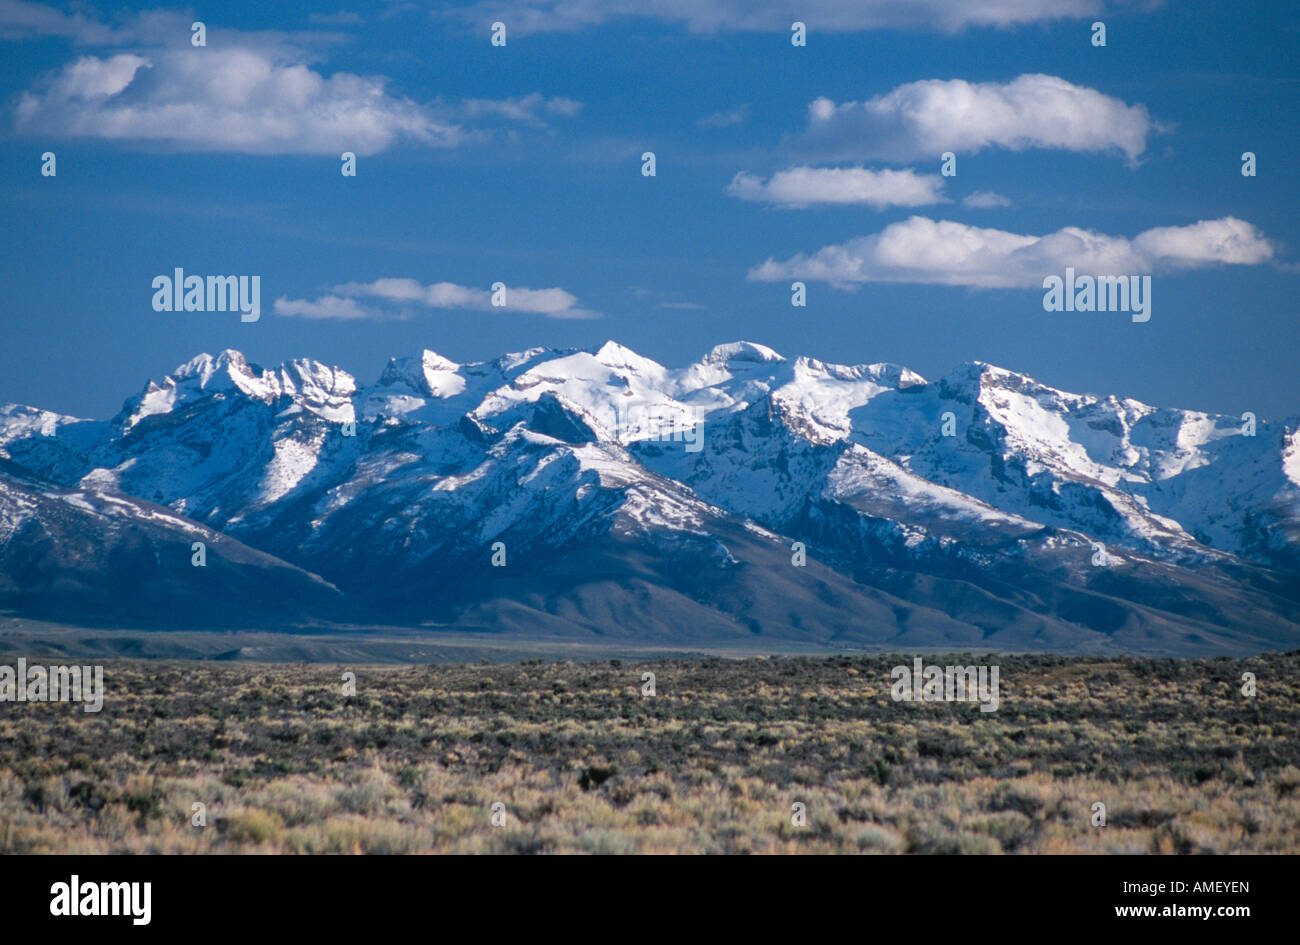 ruby mountains in springtime nevada usa stock photo: 15243932 - alamy